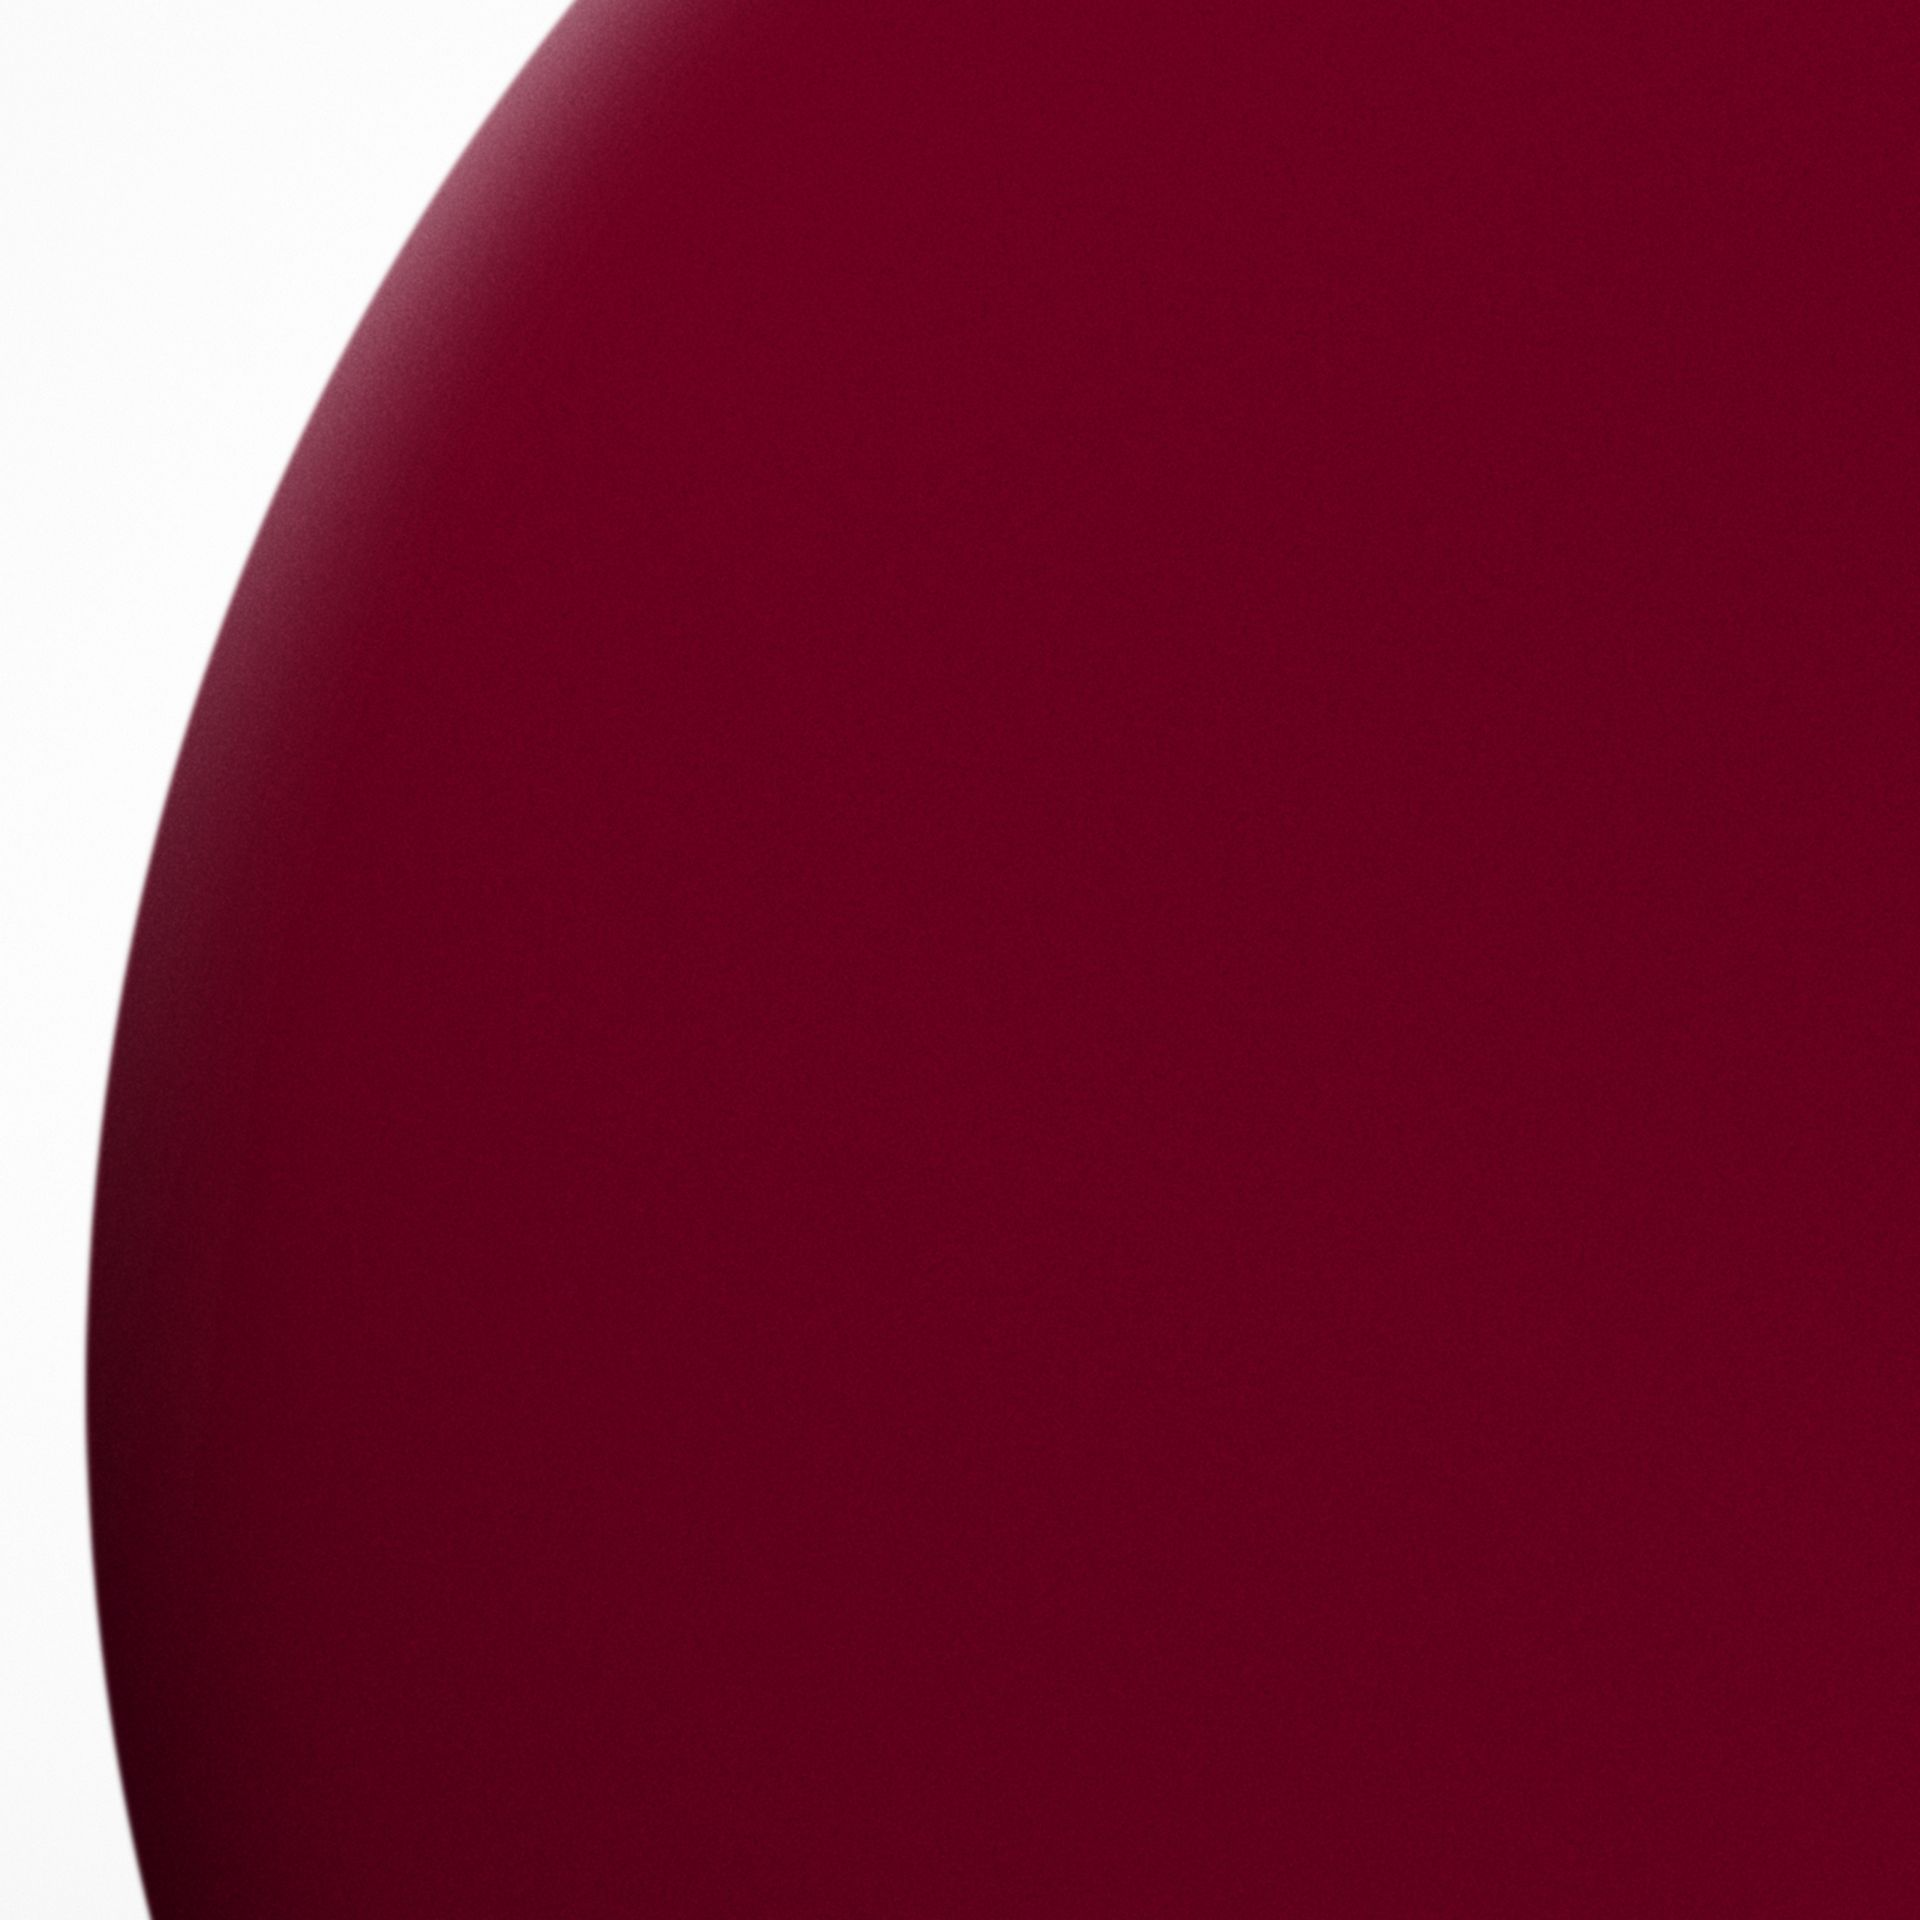 Nail Polish - Oxblood No.303 - Donna | Burberry - immagine della galleria 1